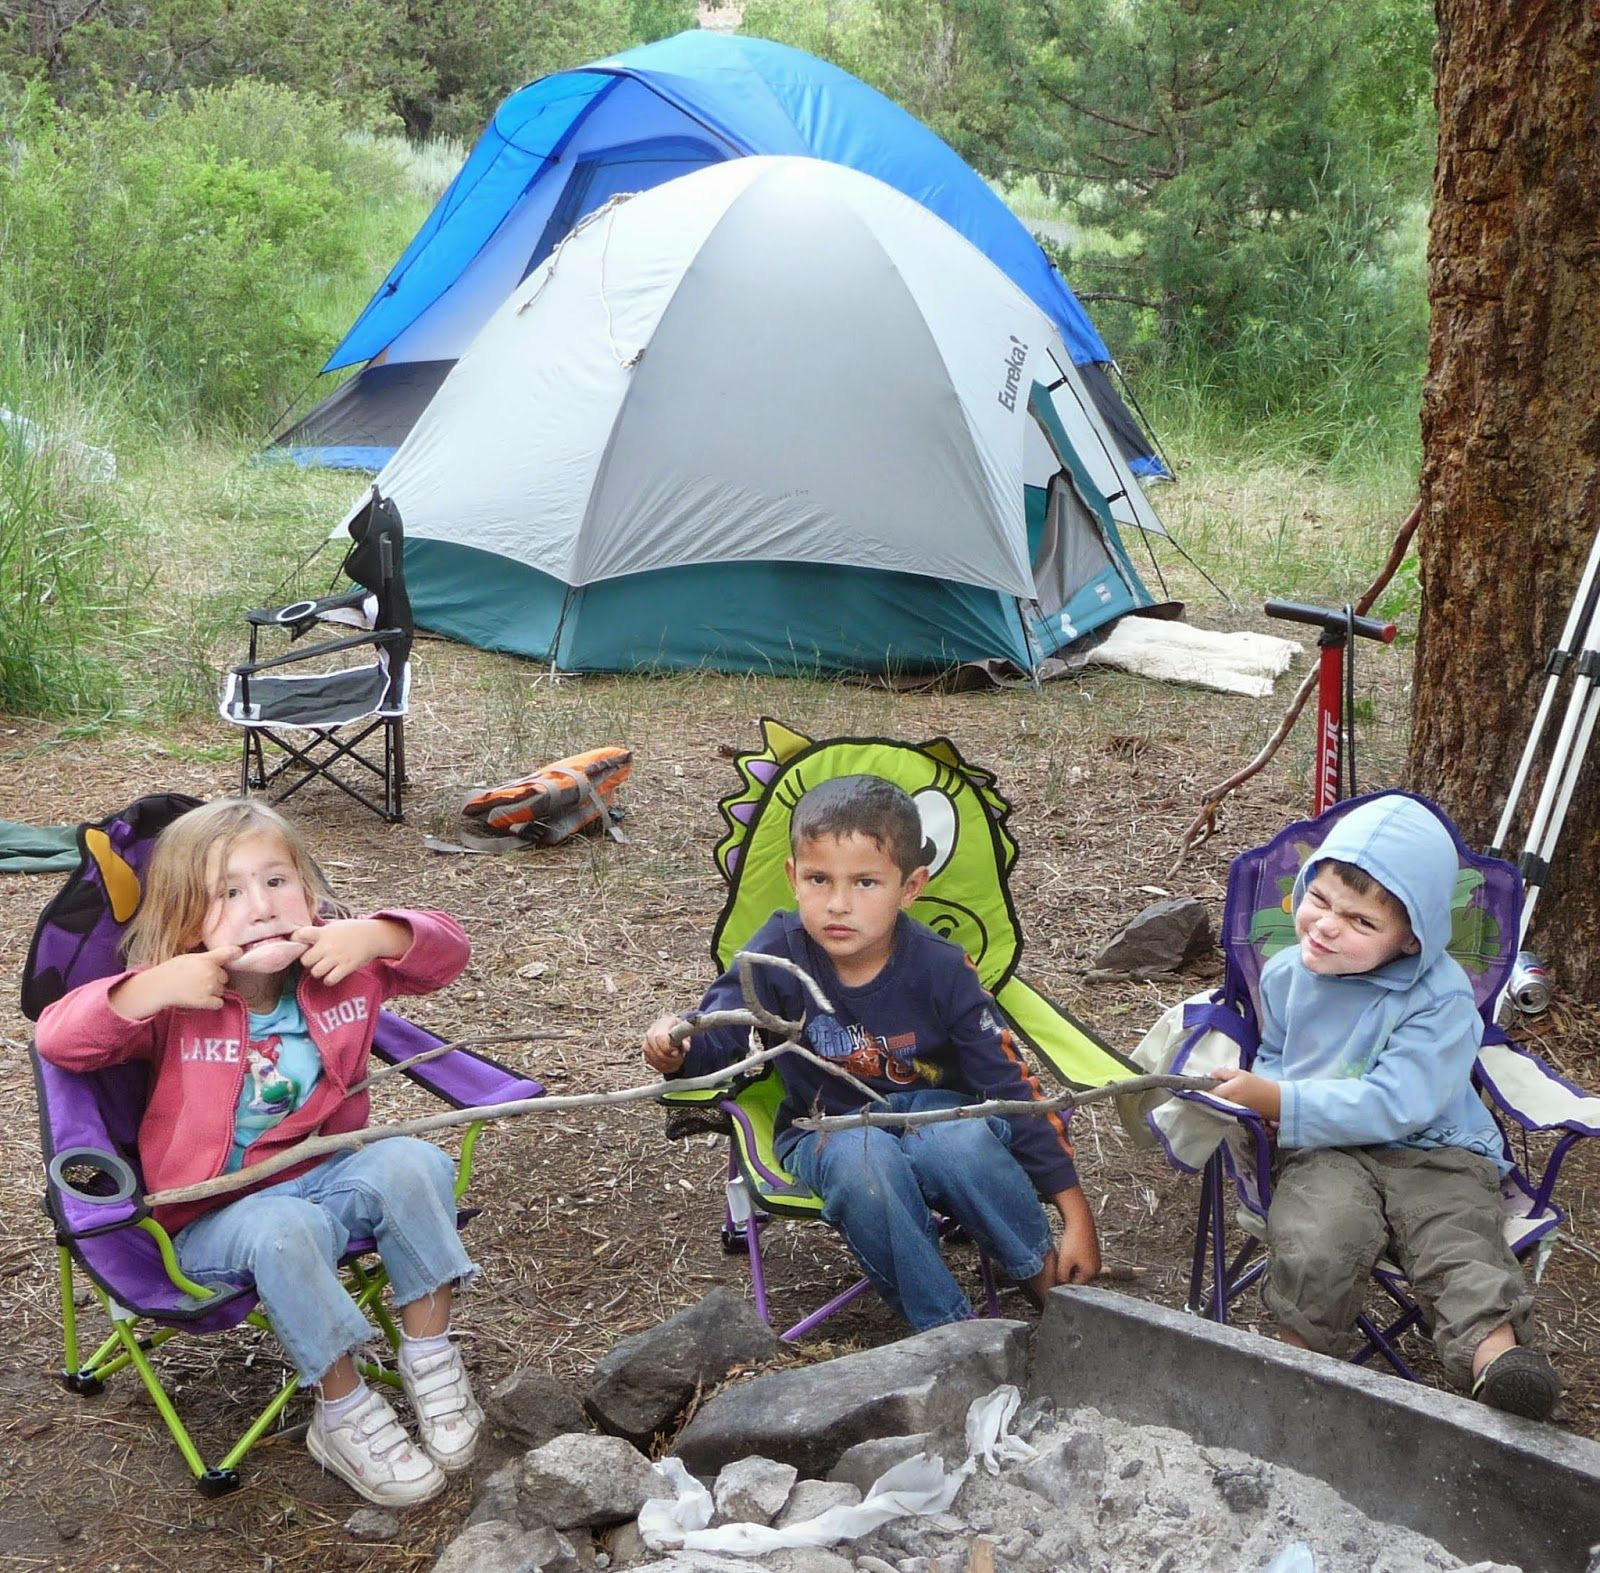 Cool Camping Gear Security And Safety Tips On With